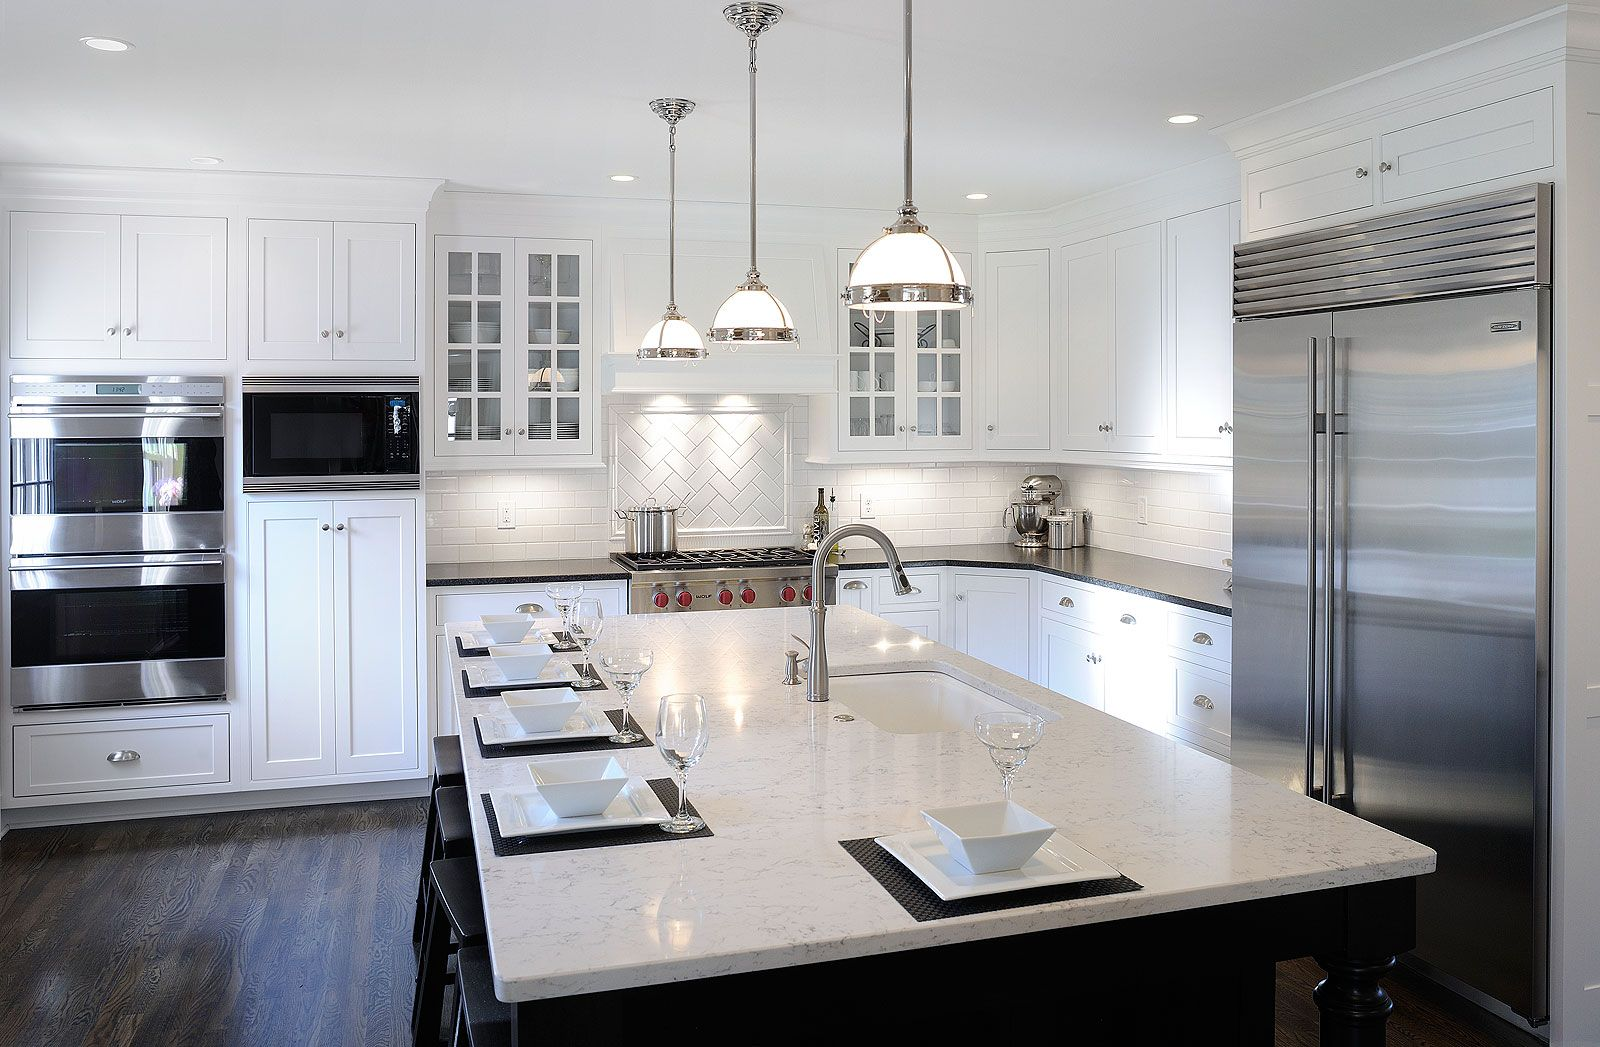 Kitchen Kitchen Design Black Kitchen Island Transitional Kitchen Design